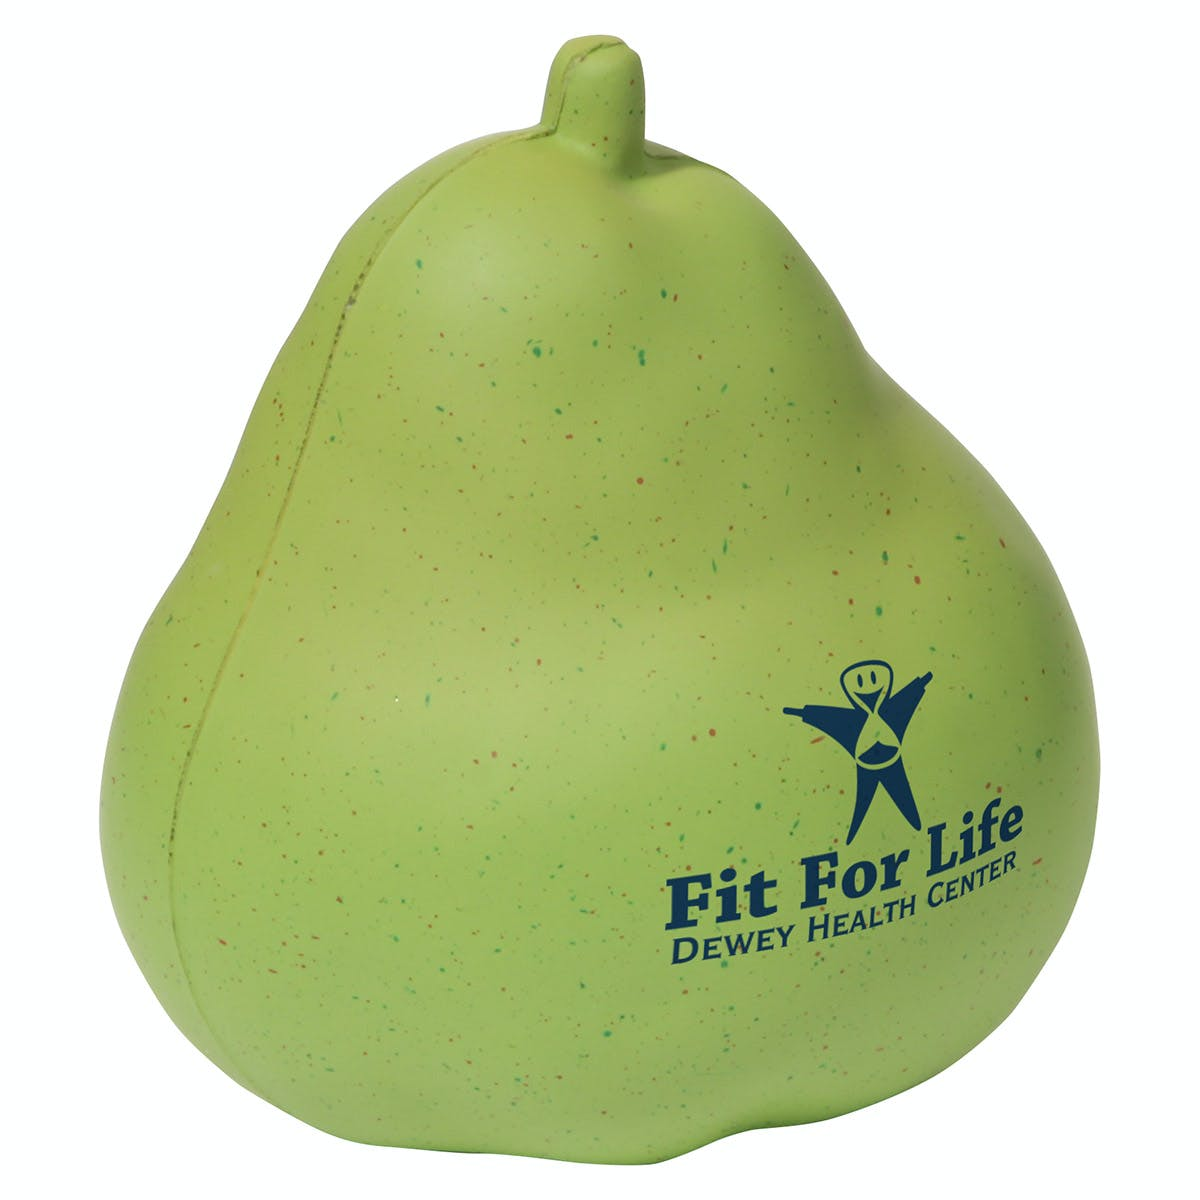 Ariel :: Pear - LFR-PR11 Stress reliever sold by Distrimatics, USA